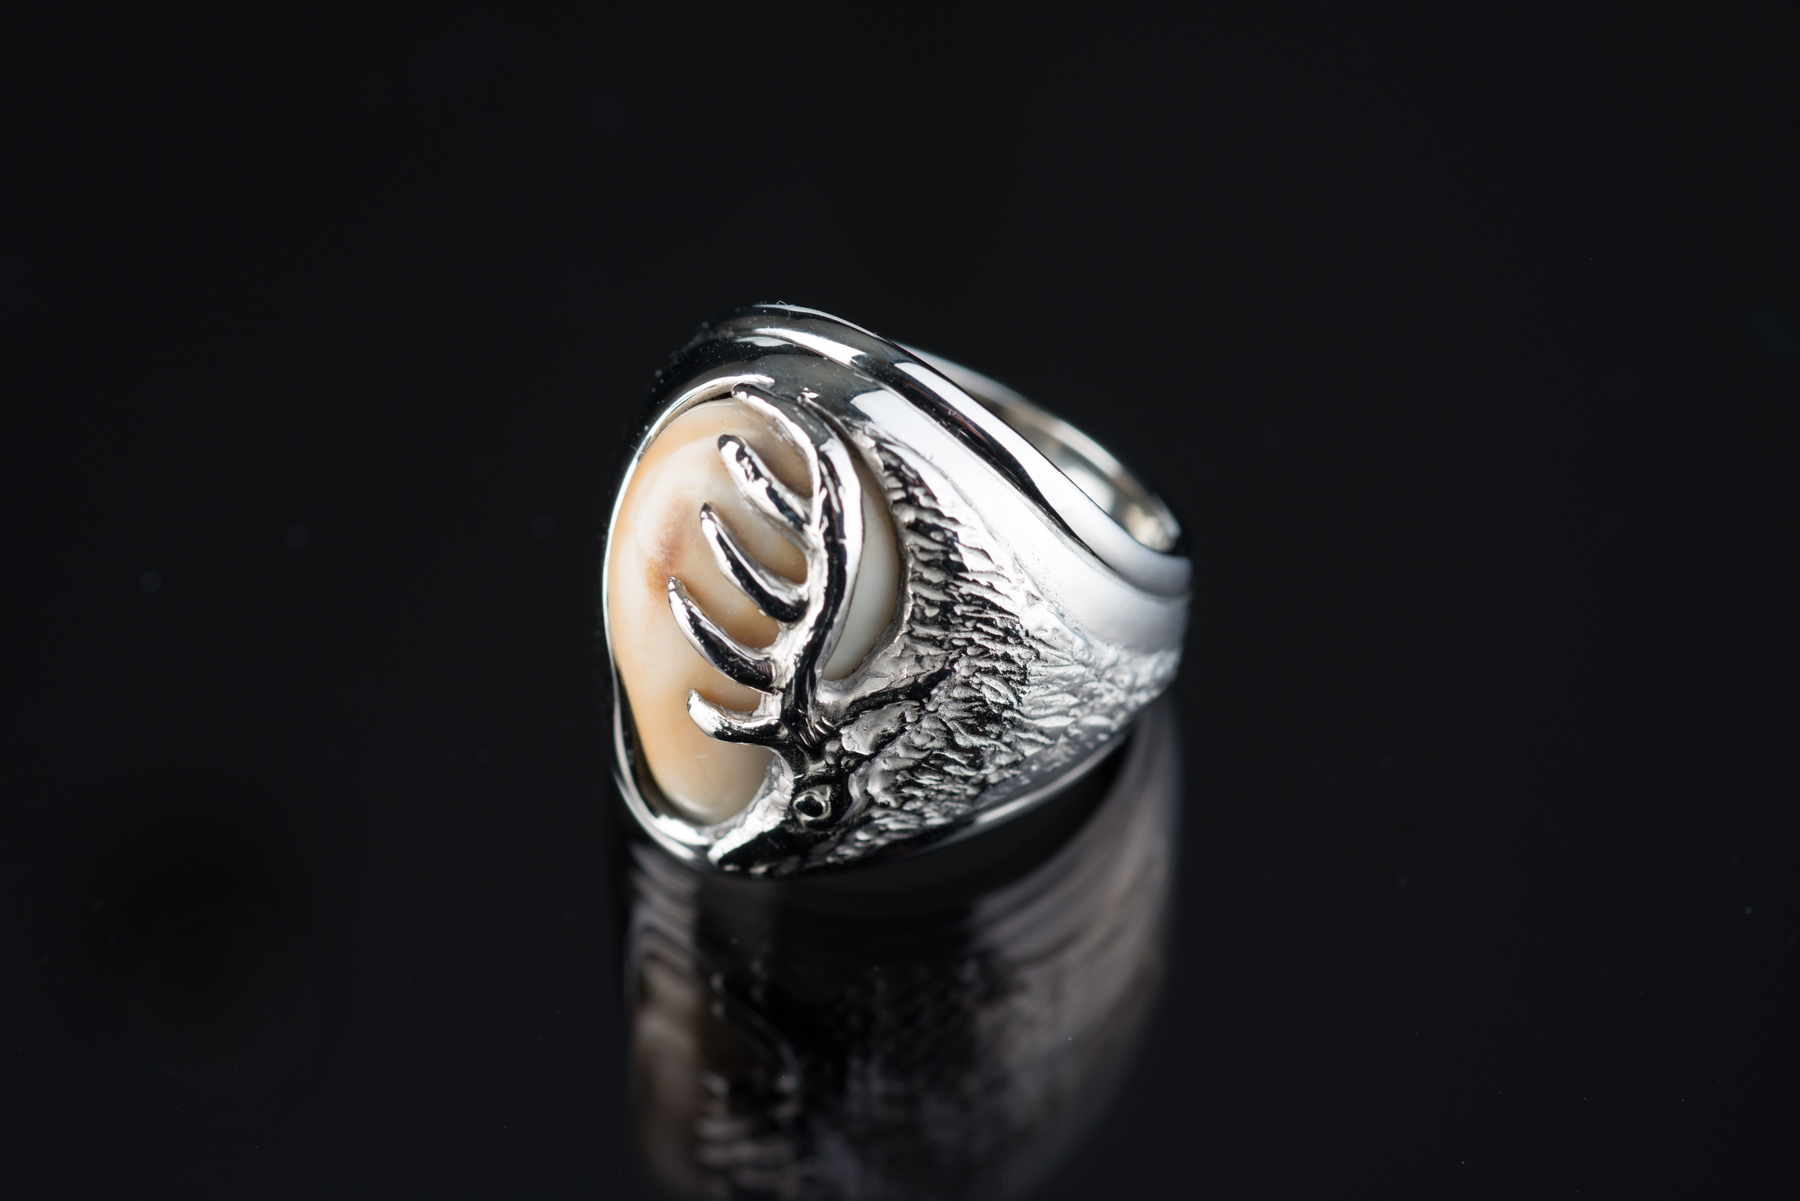 custom lab custommade com signet by jewelryking men ring handmade mens rings s design